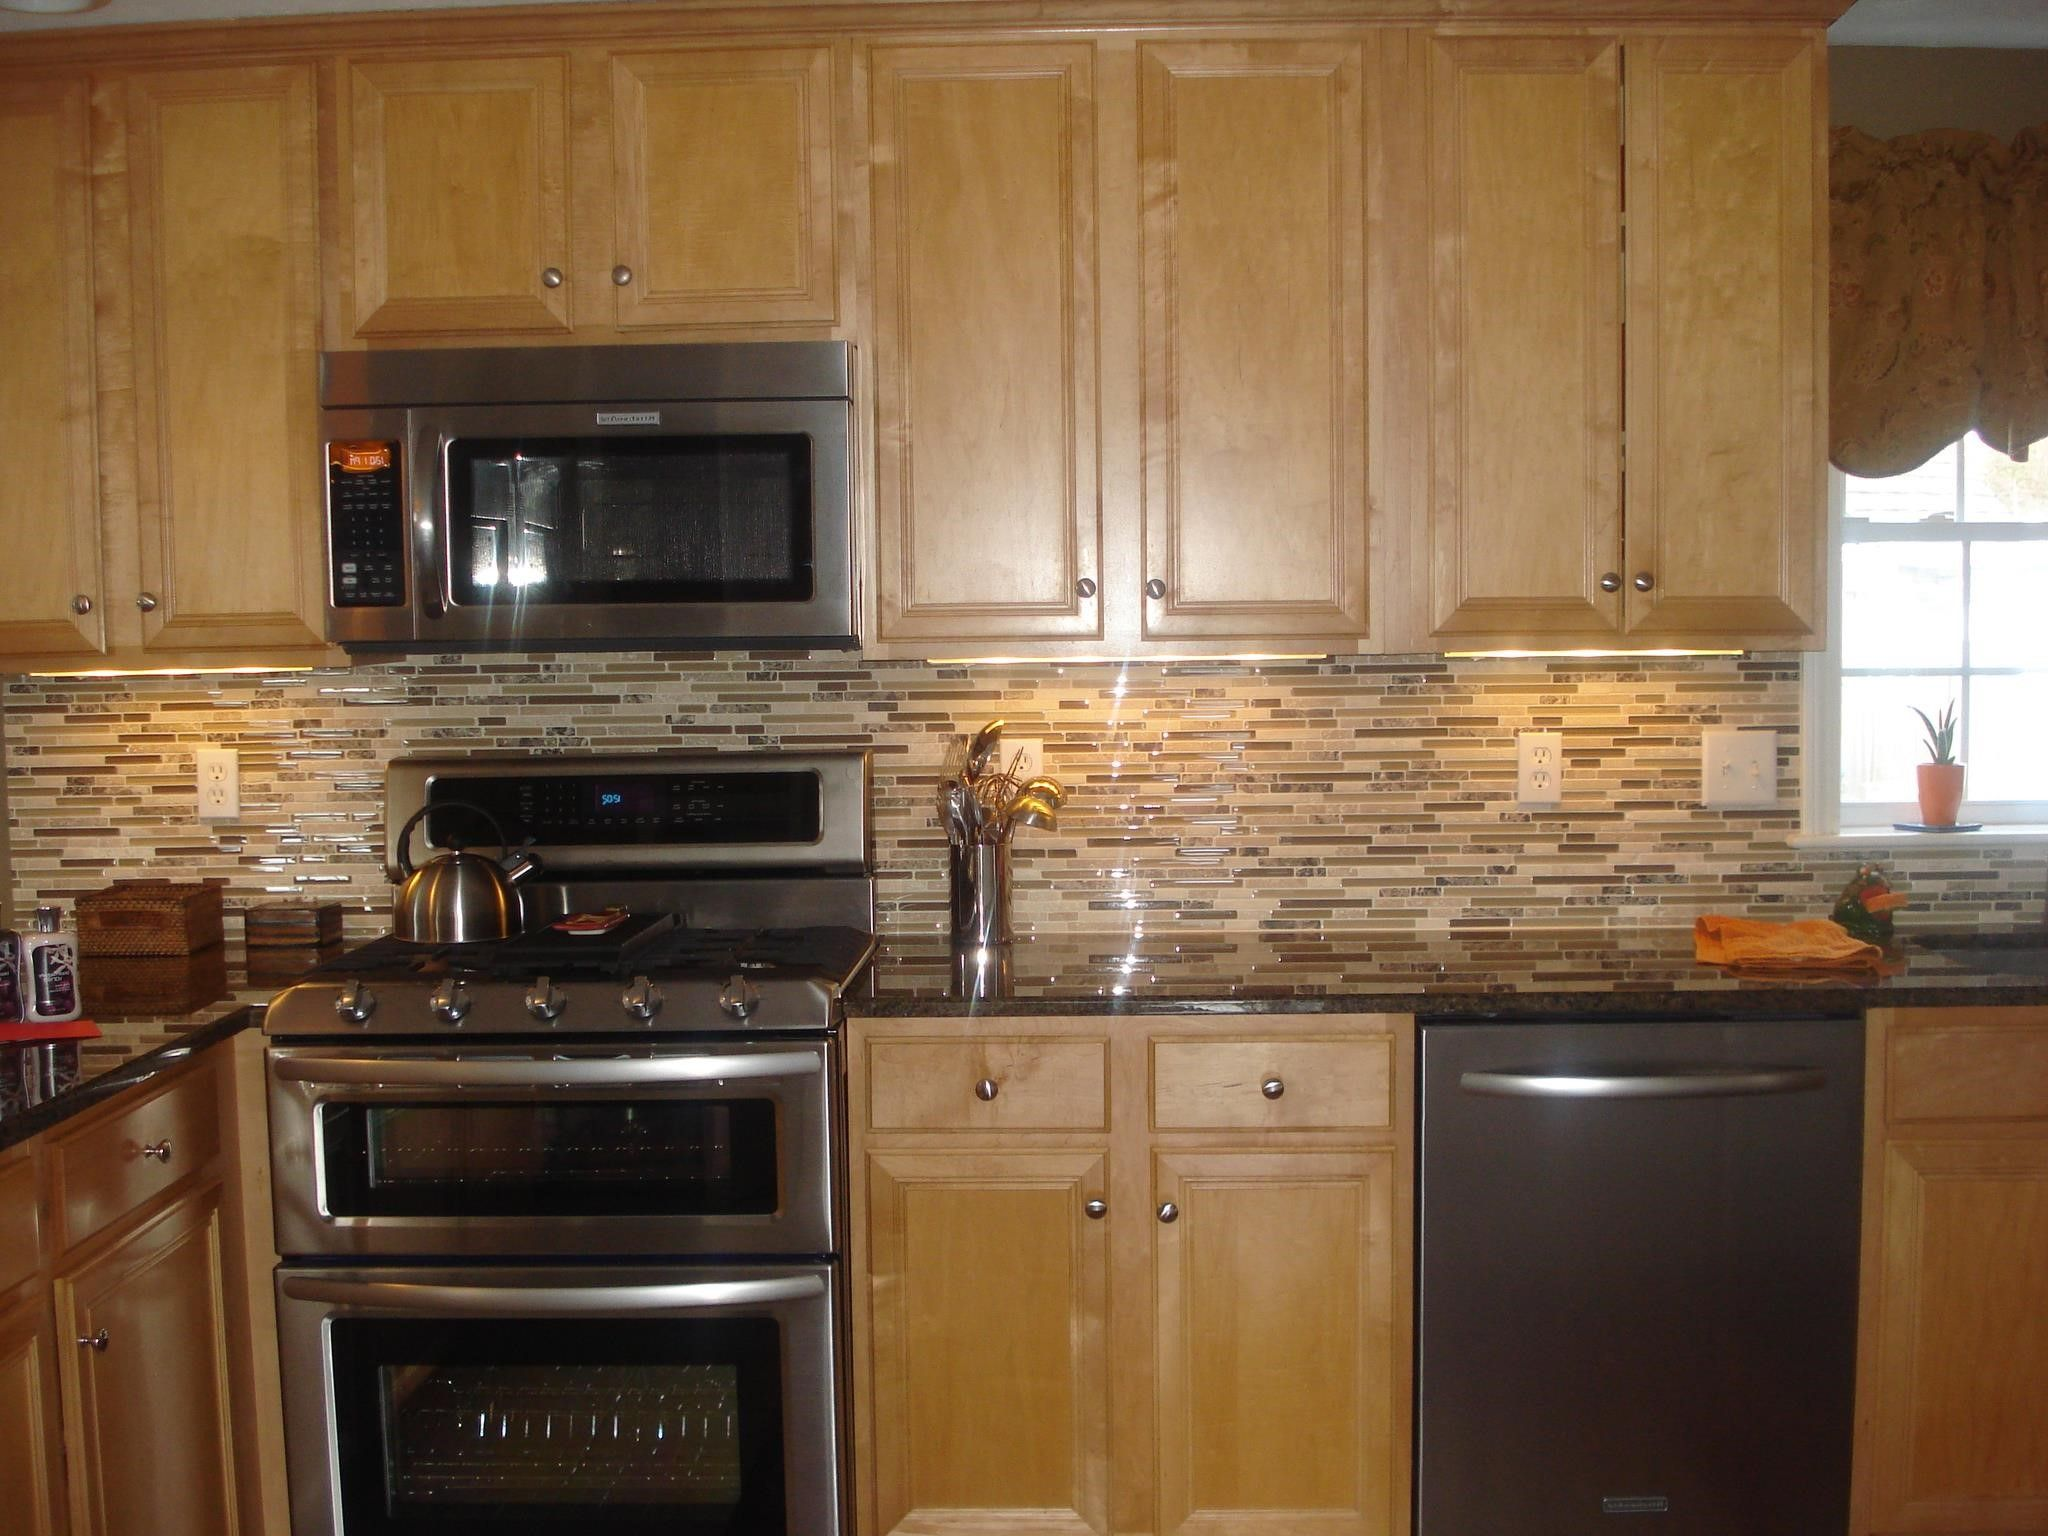 Best Glass Backsplash With Honey Maple Cabinets And Black Granite